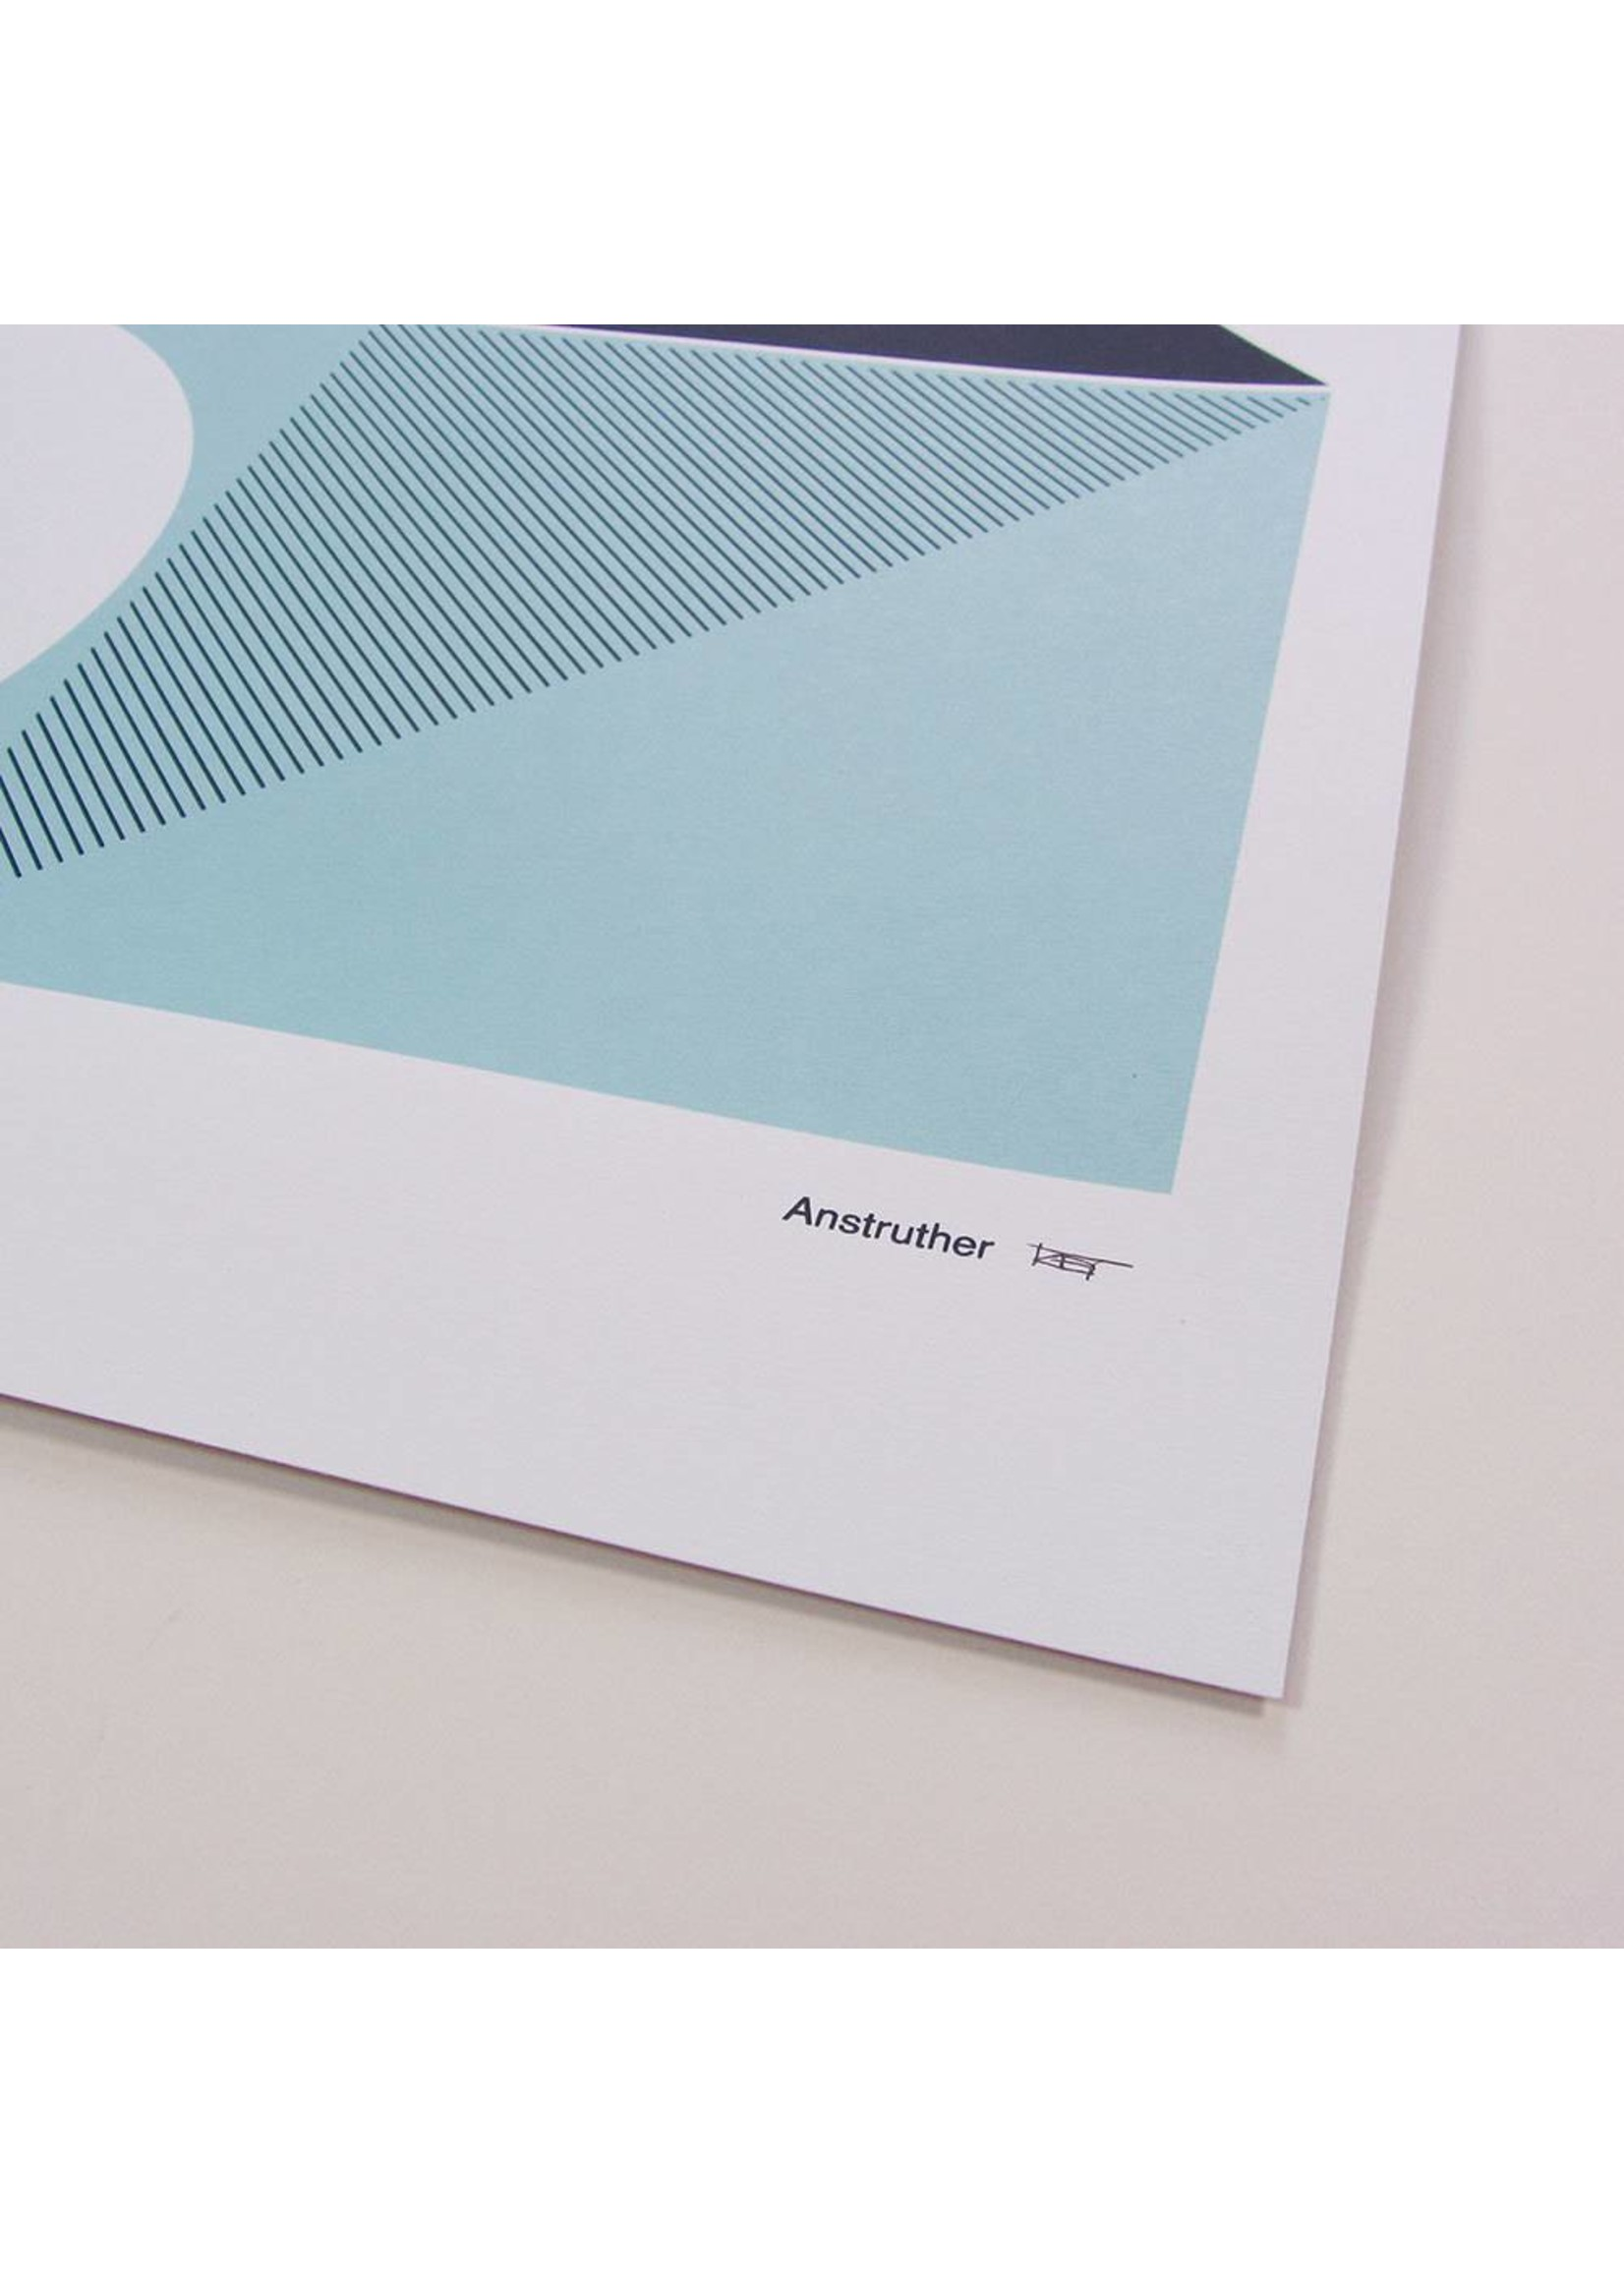 Tom Pigeon Tom Pigeon 'Anstruther' Print - A2